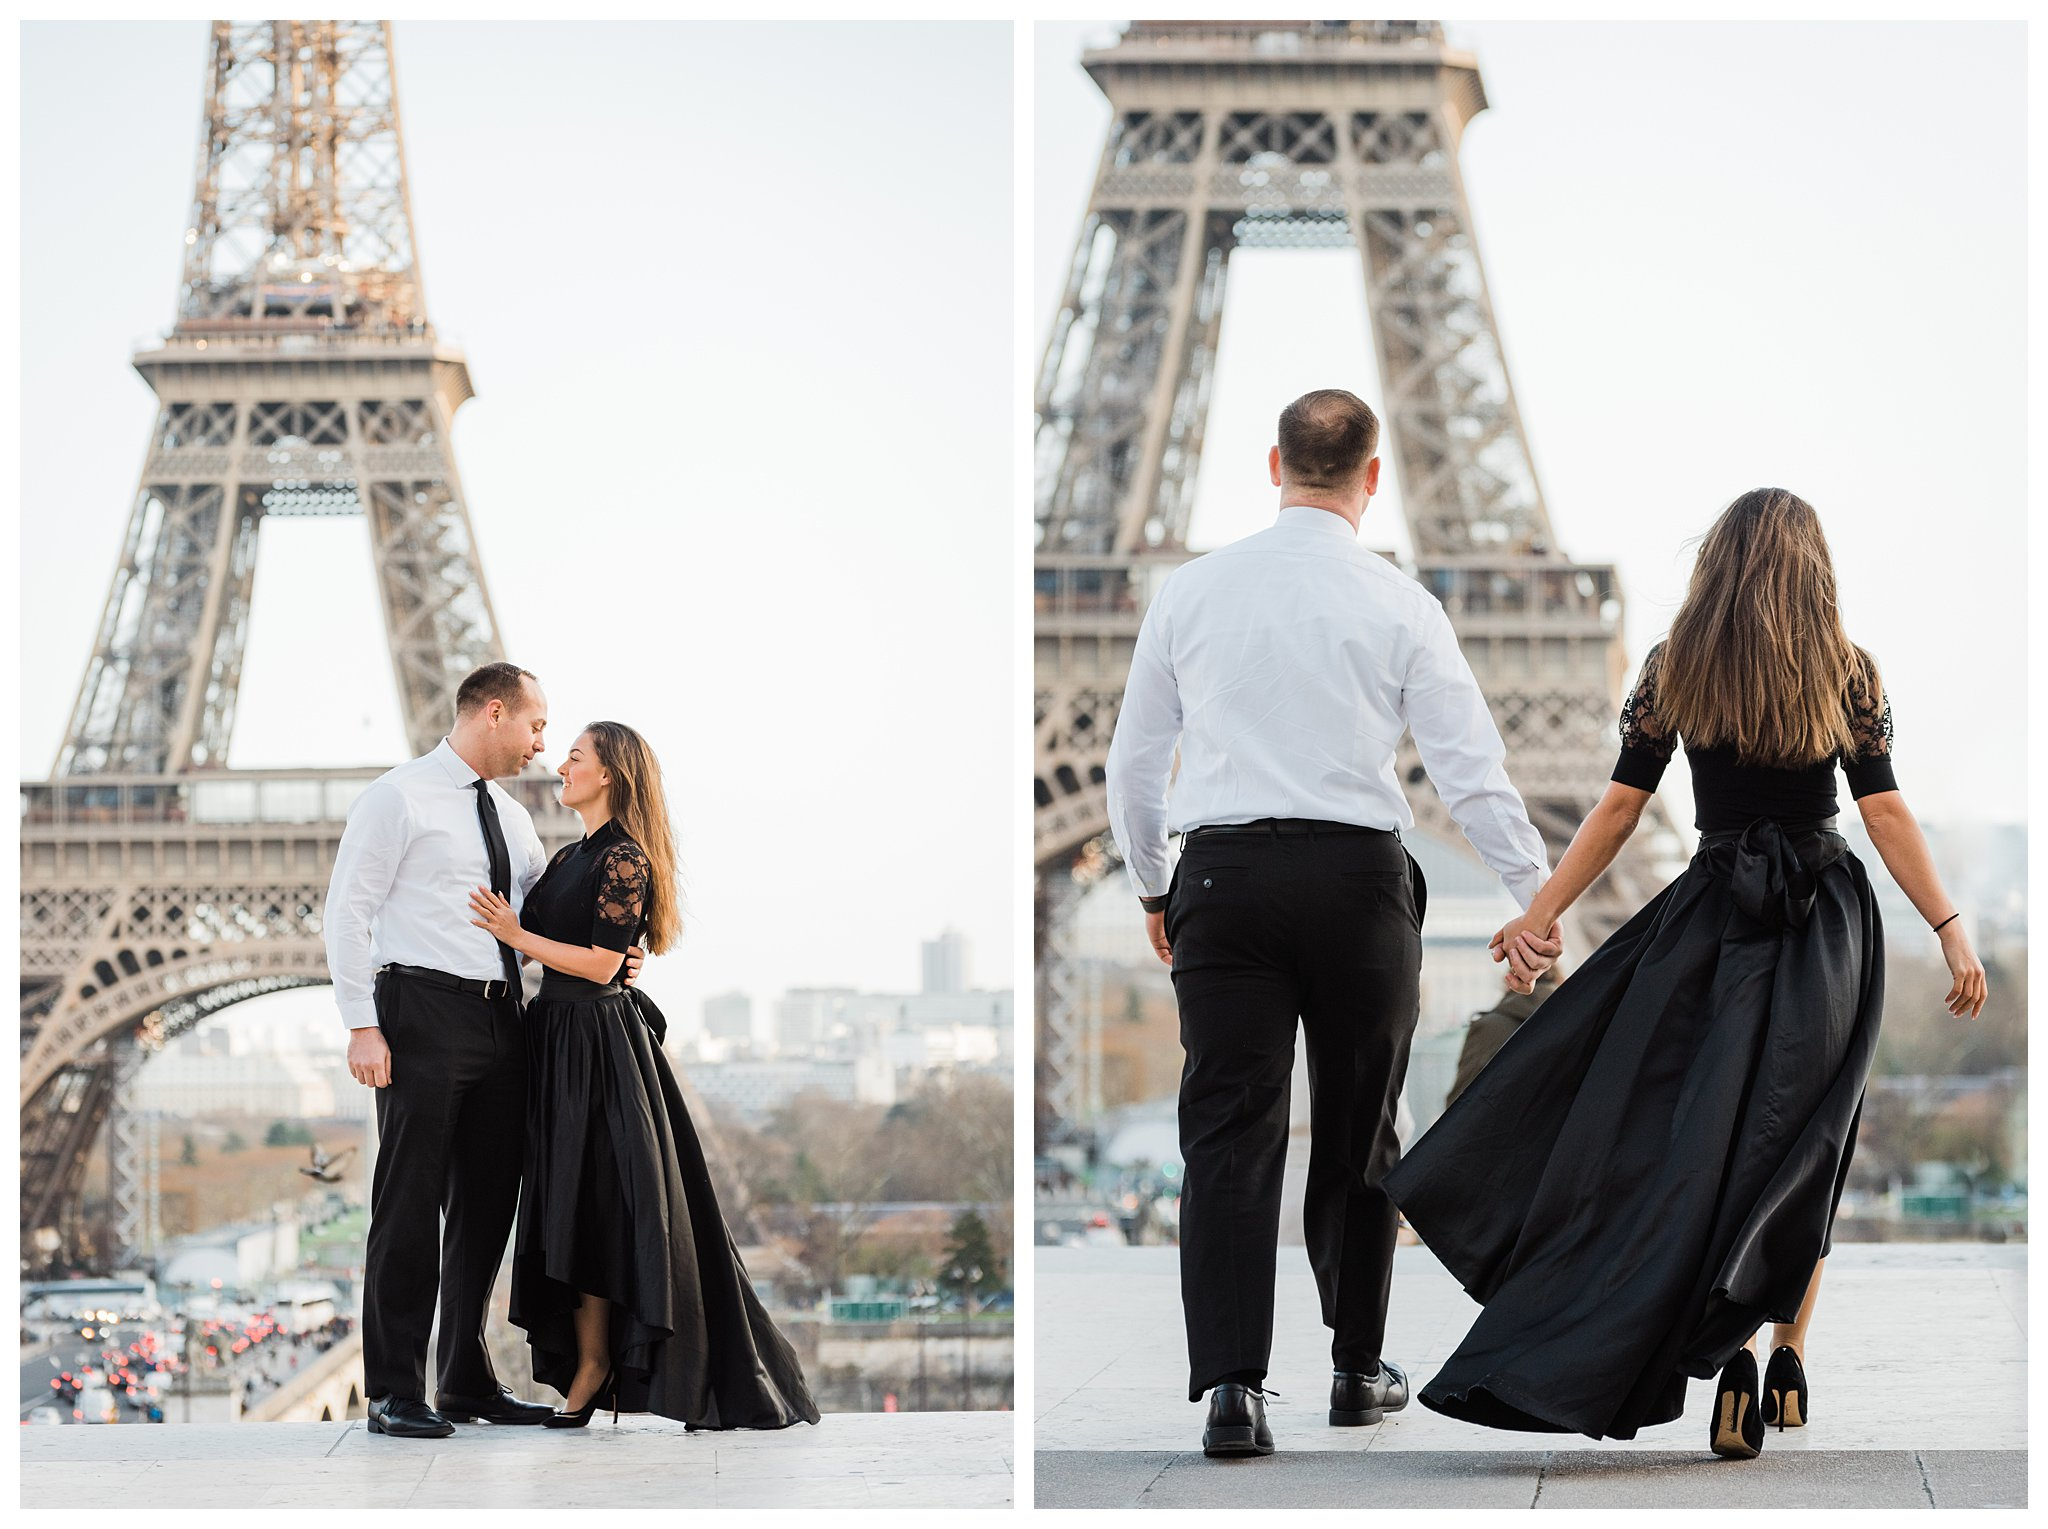 Jennifer and Yannick's Surprise Paris Proposal Photo Shoot at the Eiffel Tower - At Trocadero before the surprise